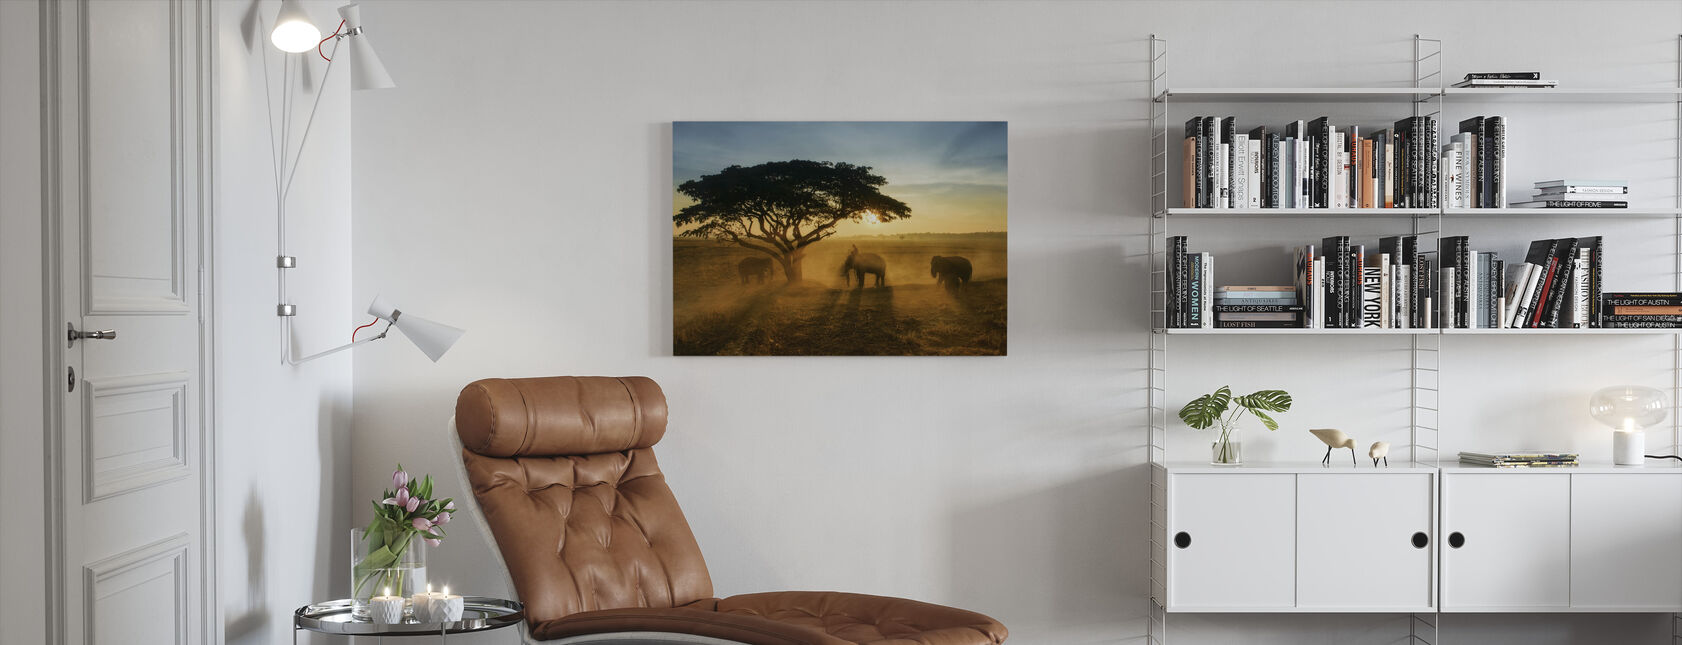 Morning Elephant Home Town - Canvas print - Living Room